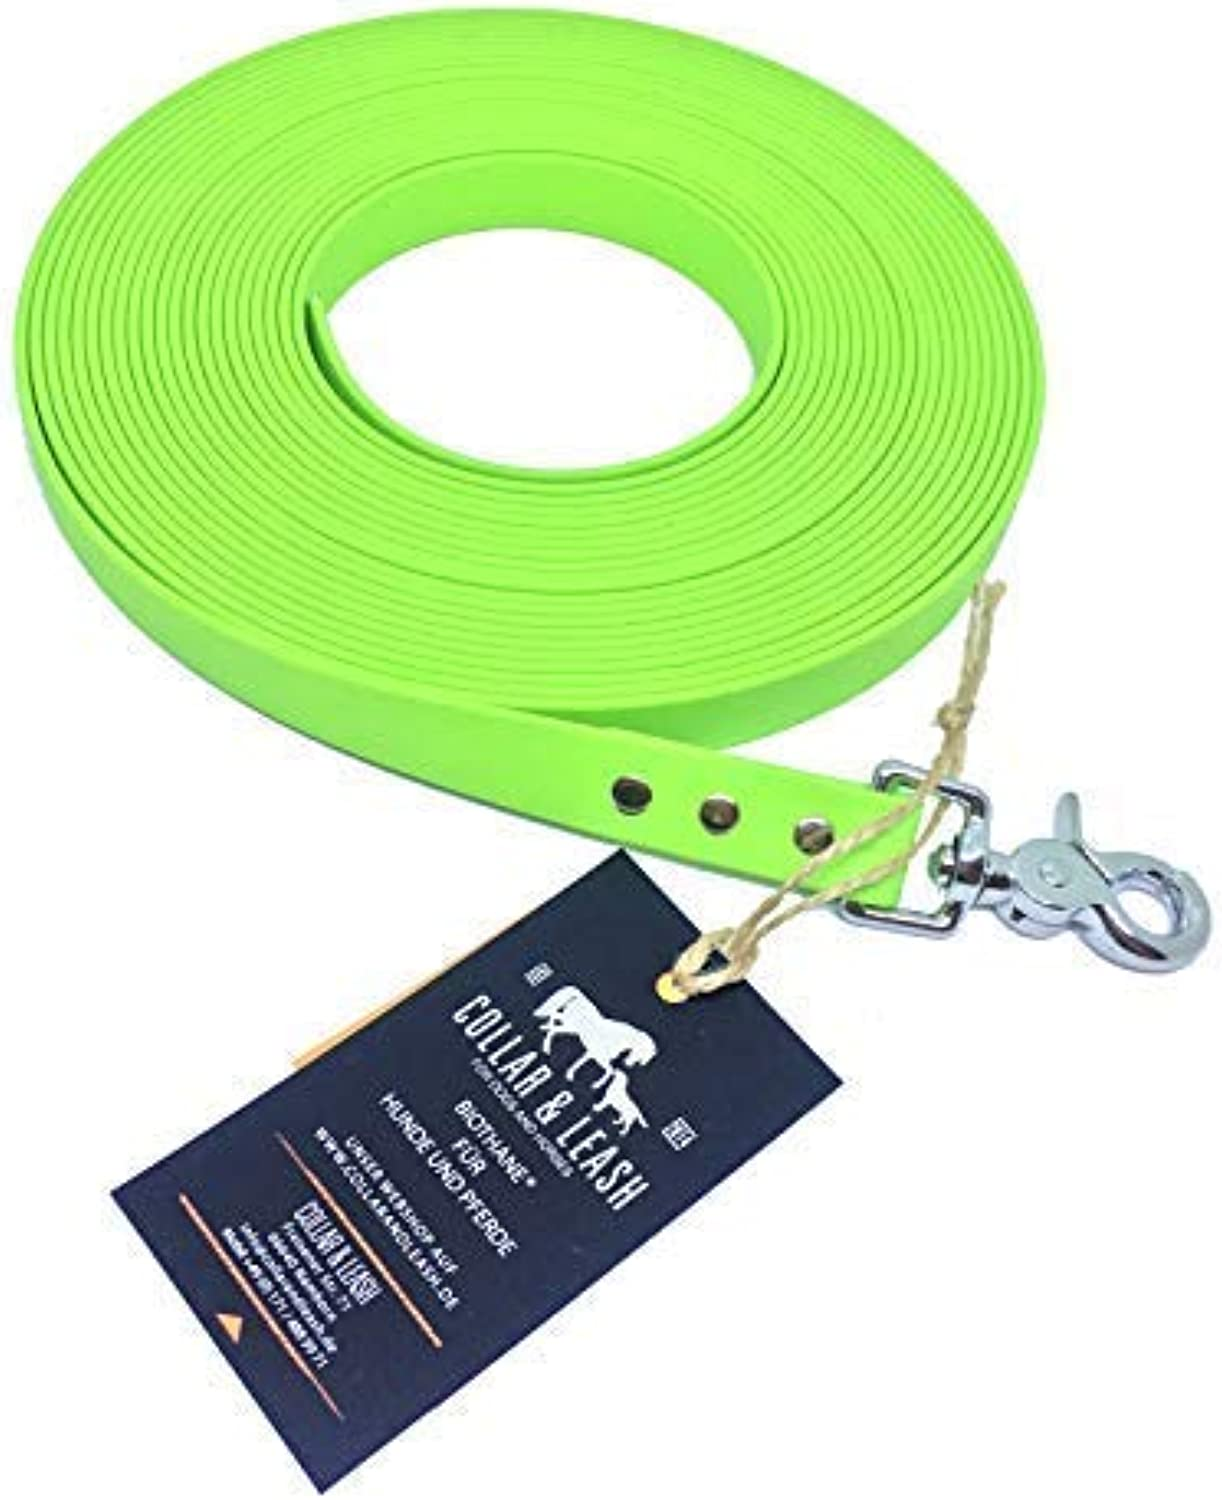 Collar & Leash Tracking Lead from 19 mm Biothane 115 Meter Apple Green  Apple Green, 10 m